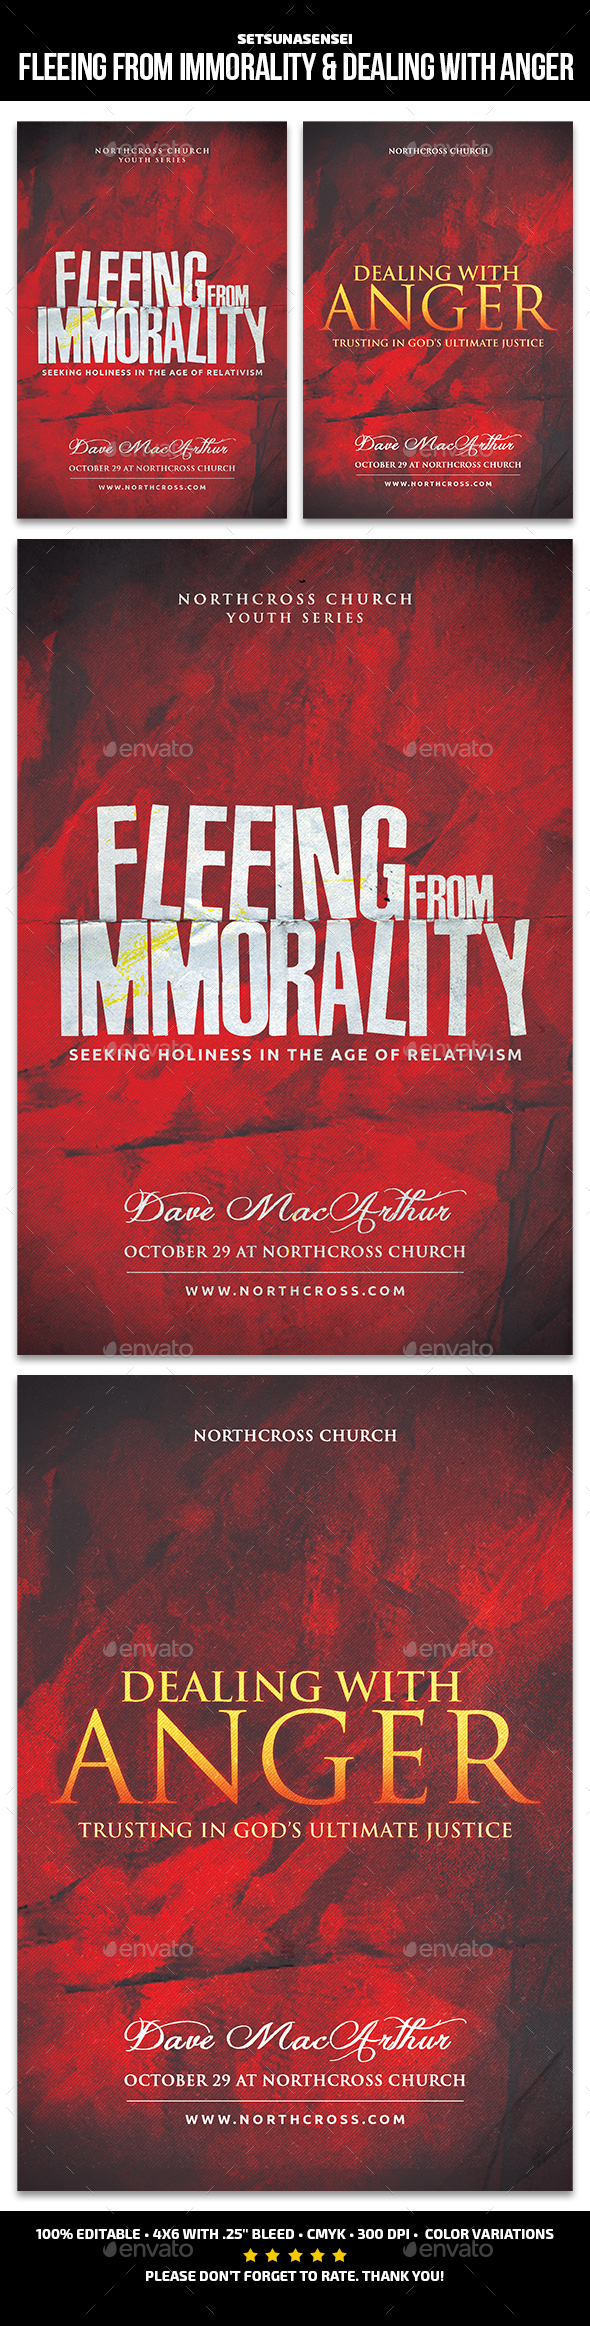 Fleeing from Immorality & Dealing with Anger Church Flyer - Church Flyers